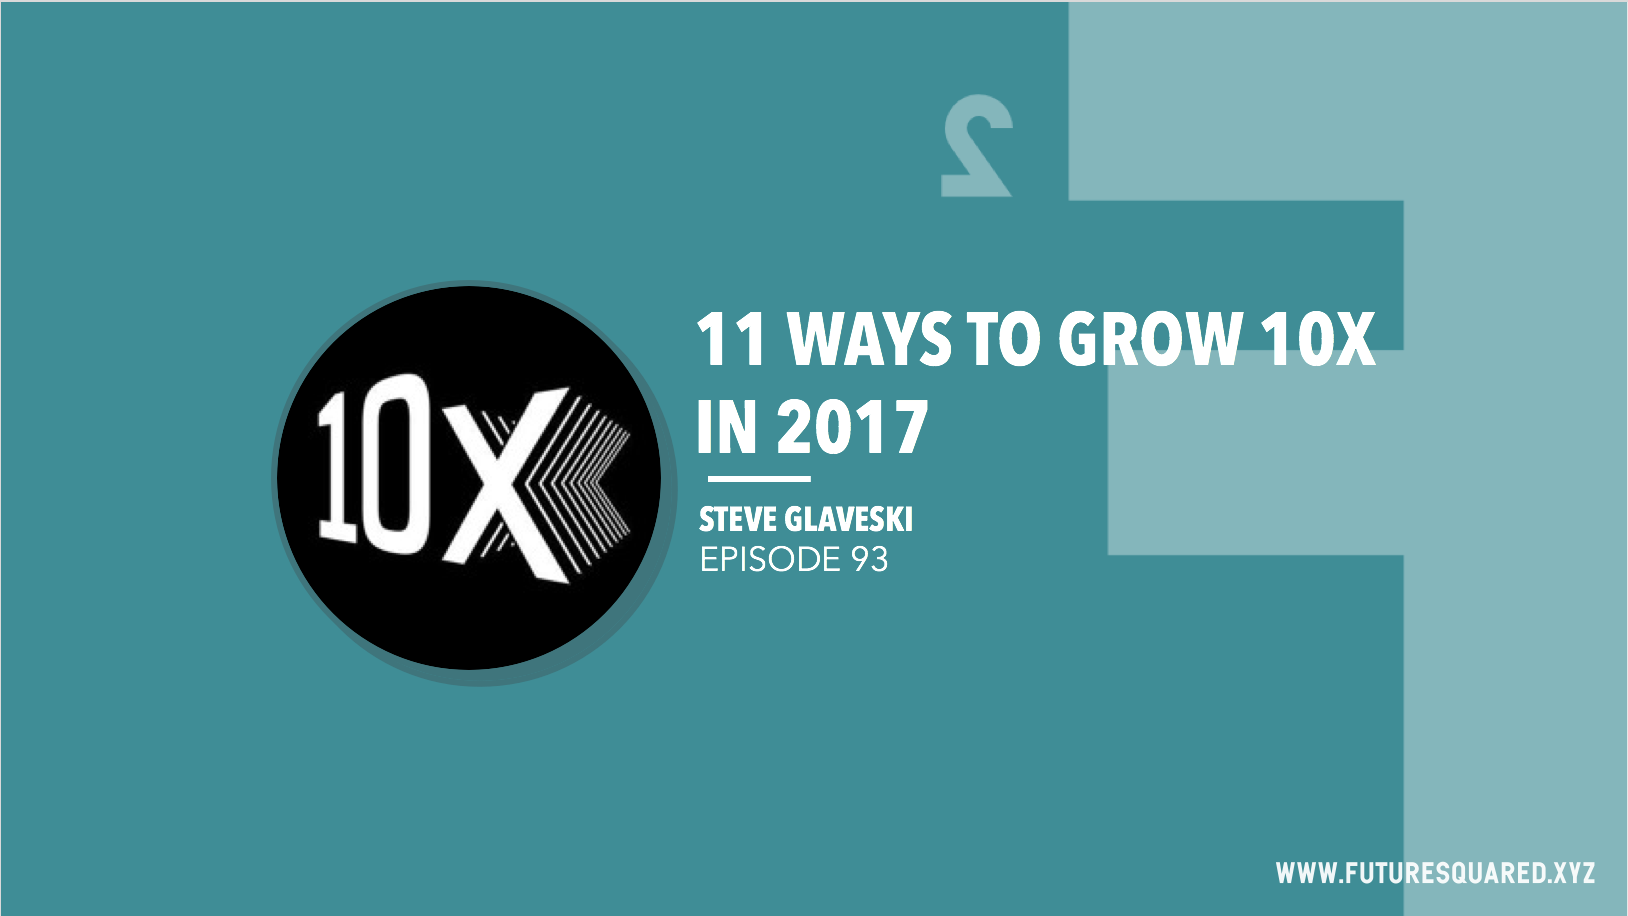 Future Squared Episode #93: 11 Ways to grow 10X in 2017